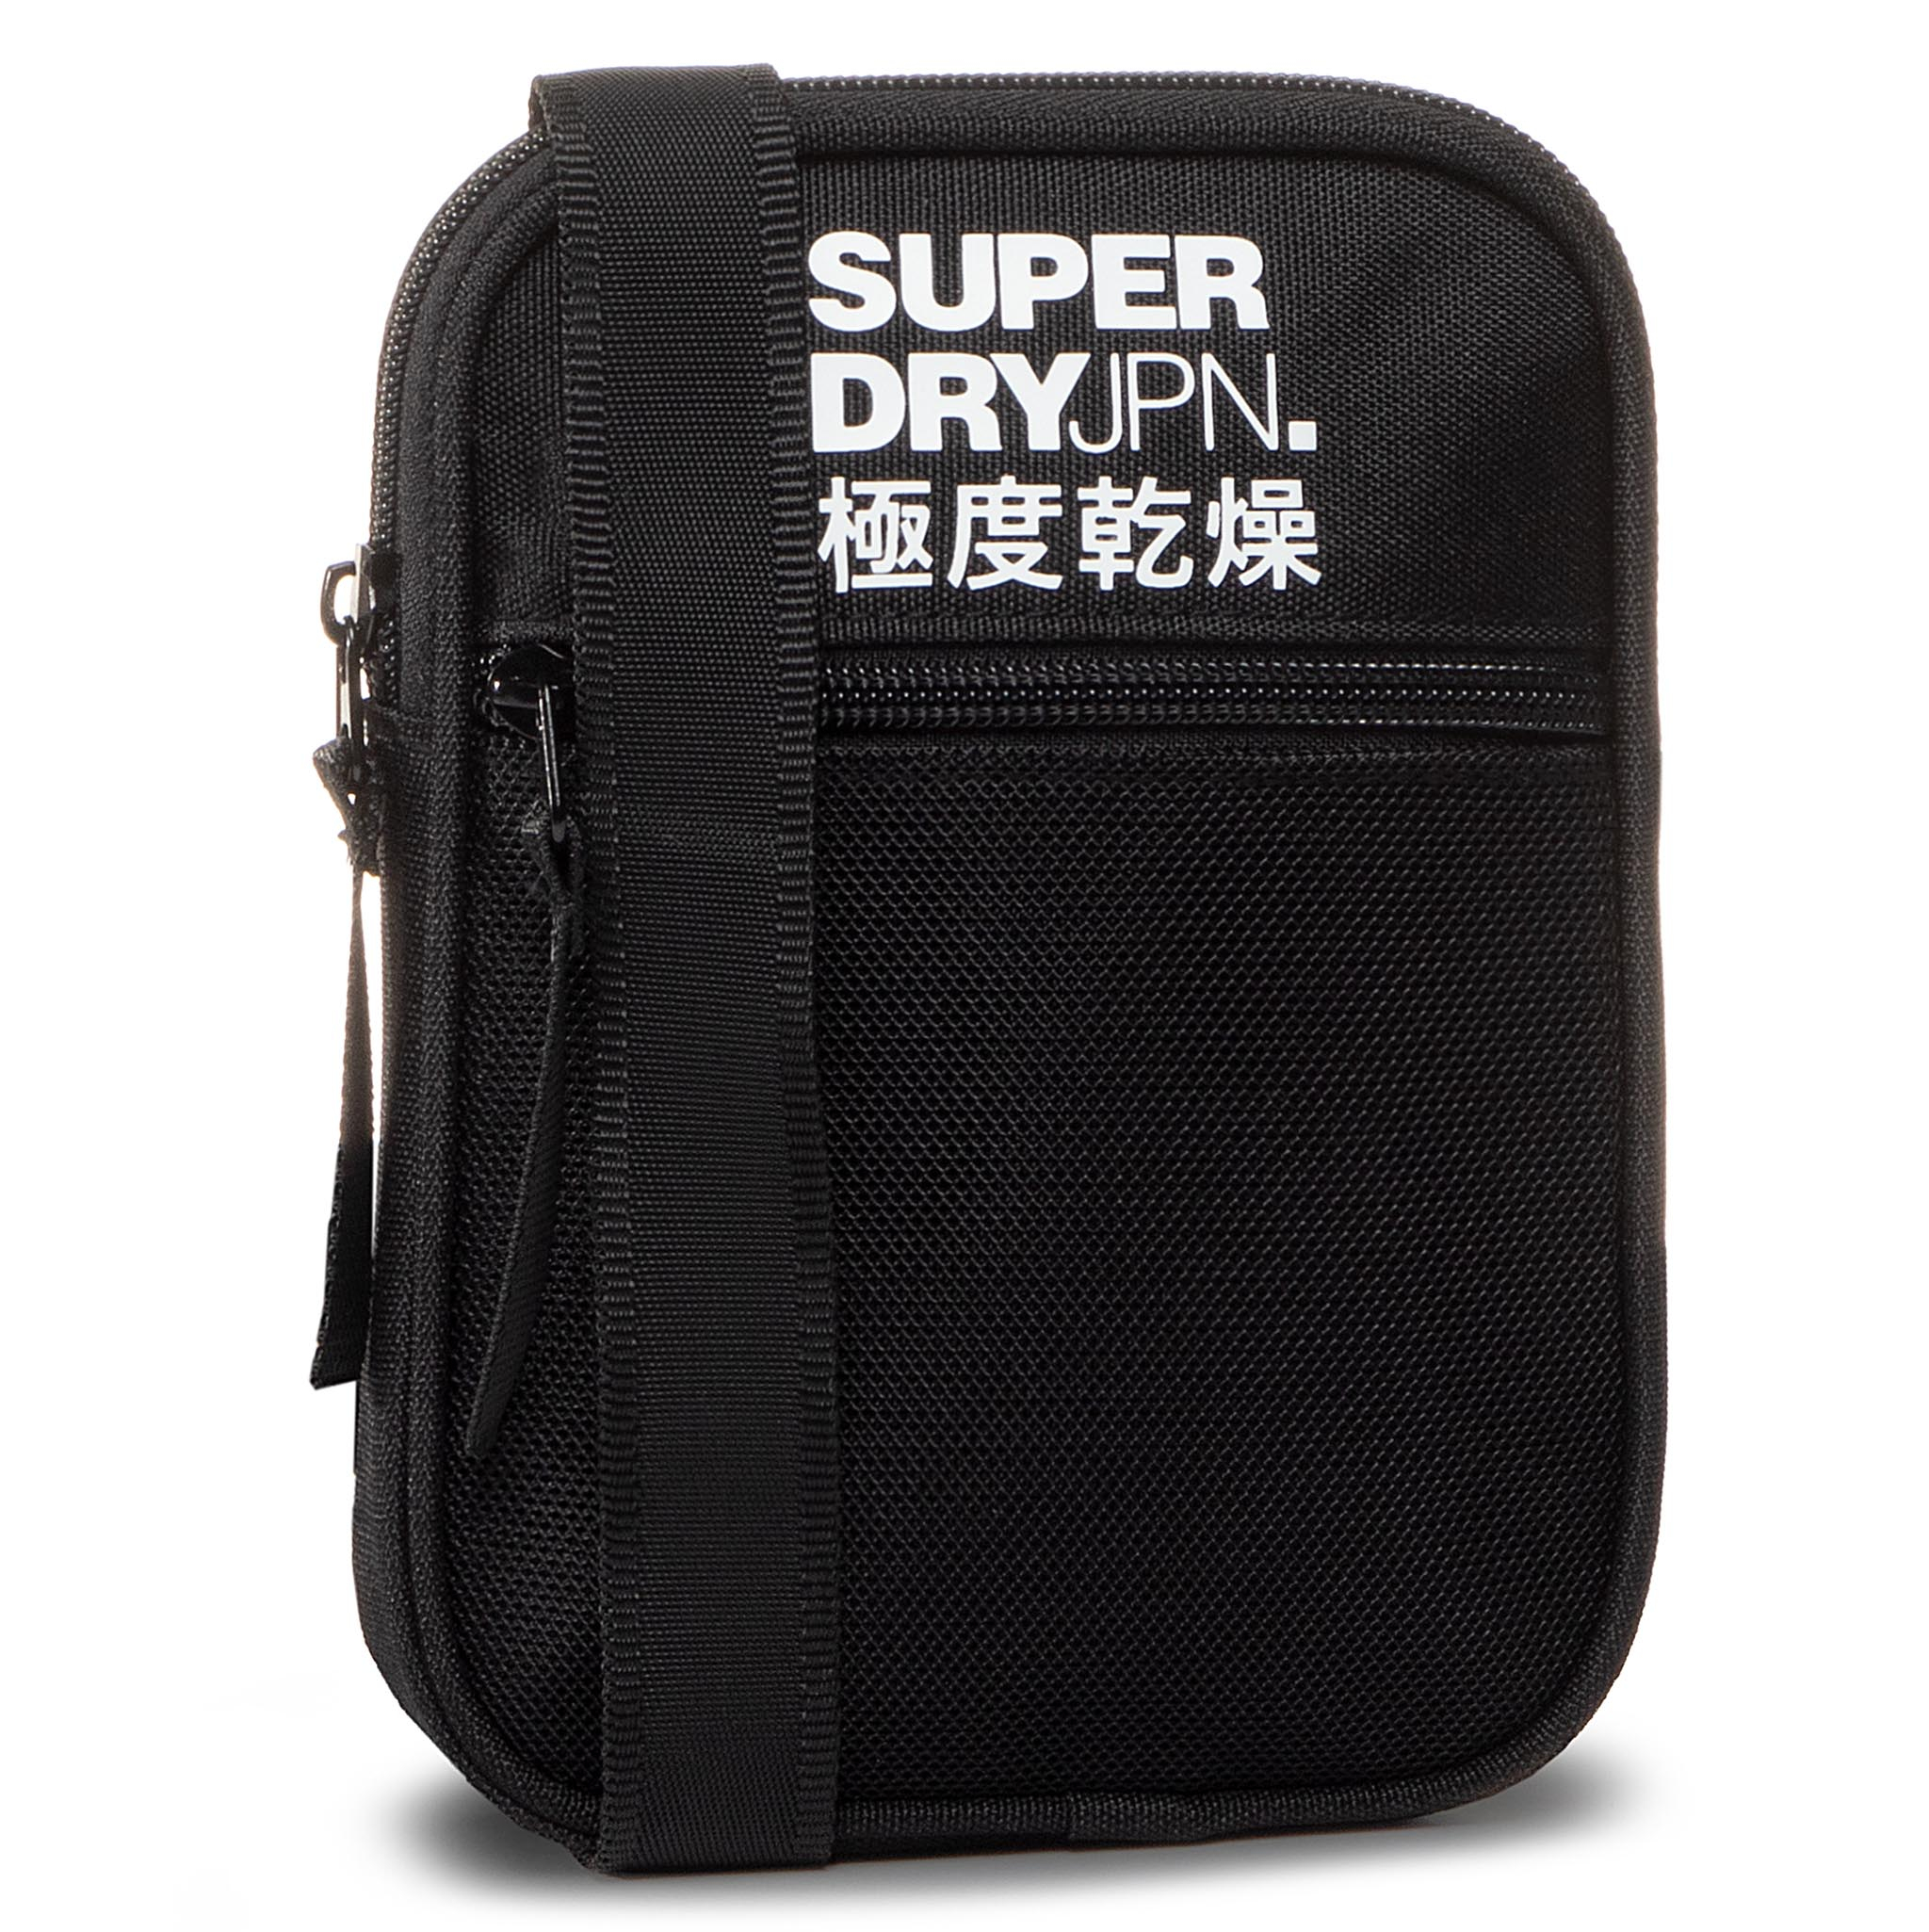 Geantă Crossover Superdry - Sport Pouch M9110006a Black 02a imagine